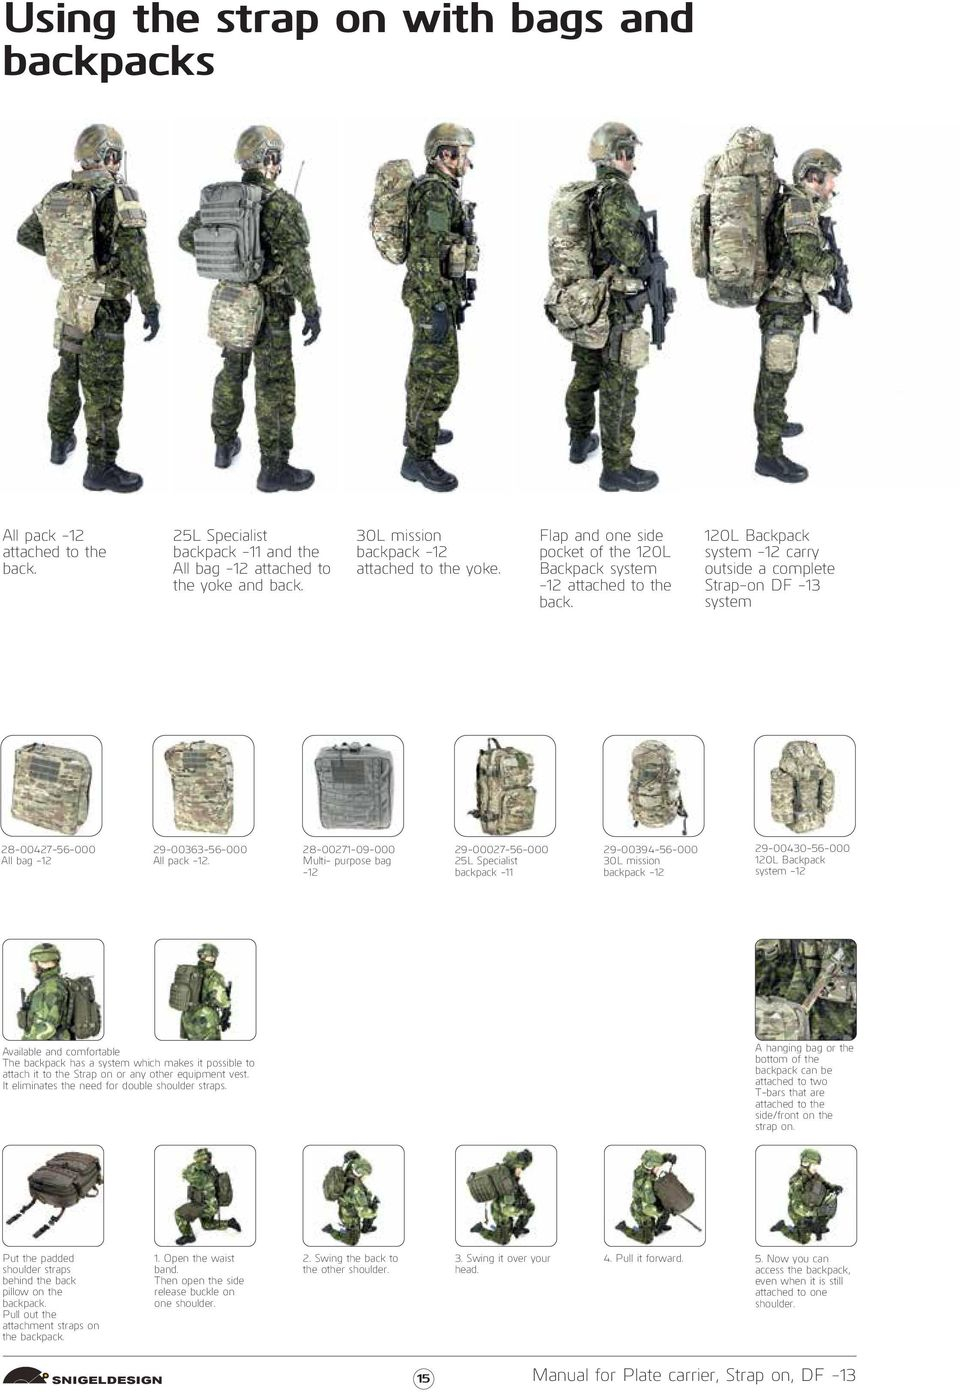 28-00271-09-000 Multi- purpose bag 29-00027-56-000 25L Specialist backpack -11 29-00394-56-000 30L mission backpack 29-00430-56-000 120L Backpack system Available and comfortable The backpack has a